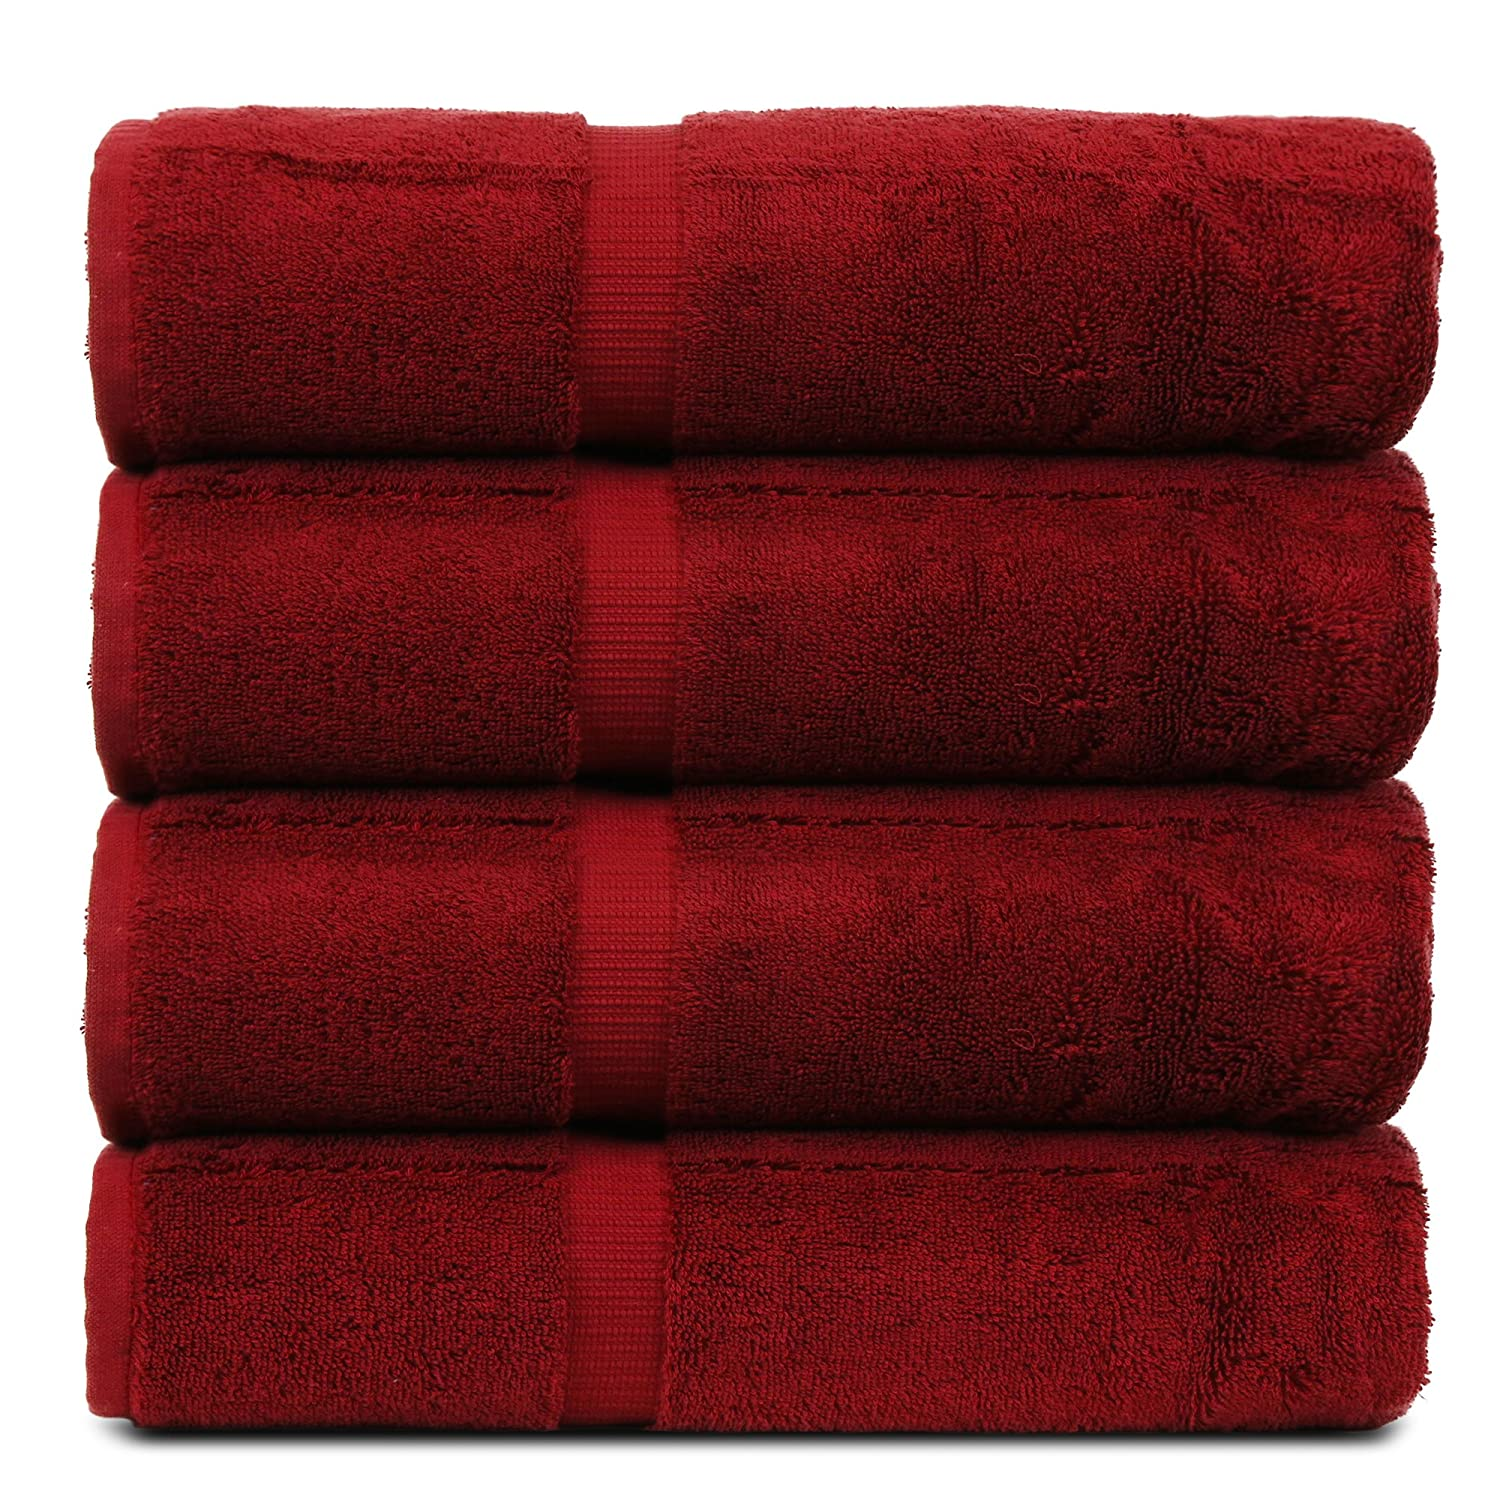 BC BARE COTTON Luxury Hotel & Spa Towel Turkish Cotton Bath Towel